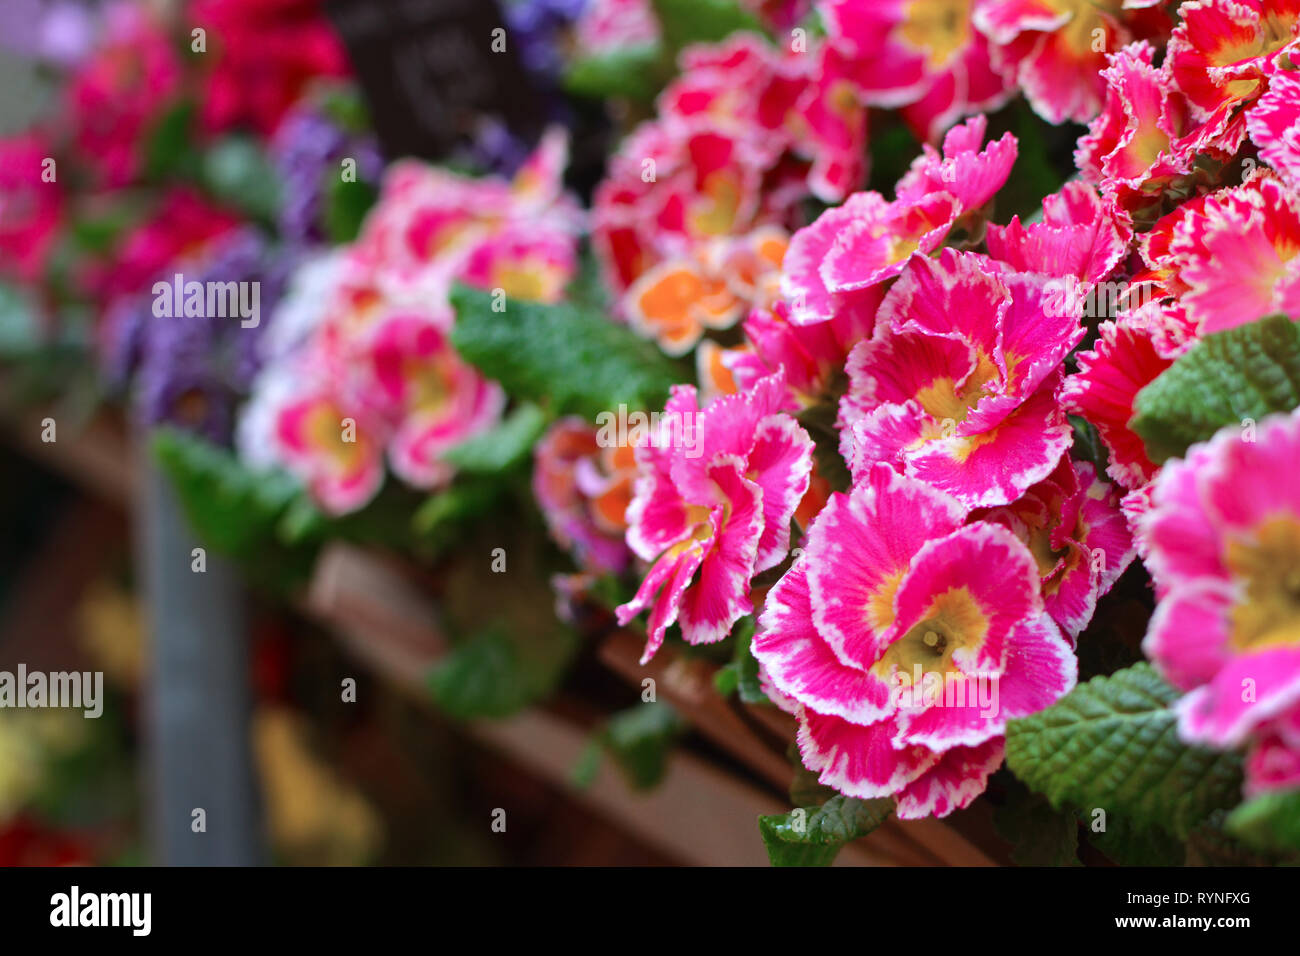 Pink Primula spring flowers with yellow middle and white tips on flower stand with blurry flowers in background - Stock Image